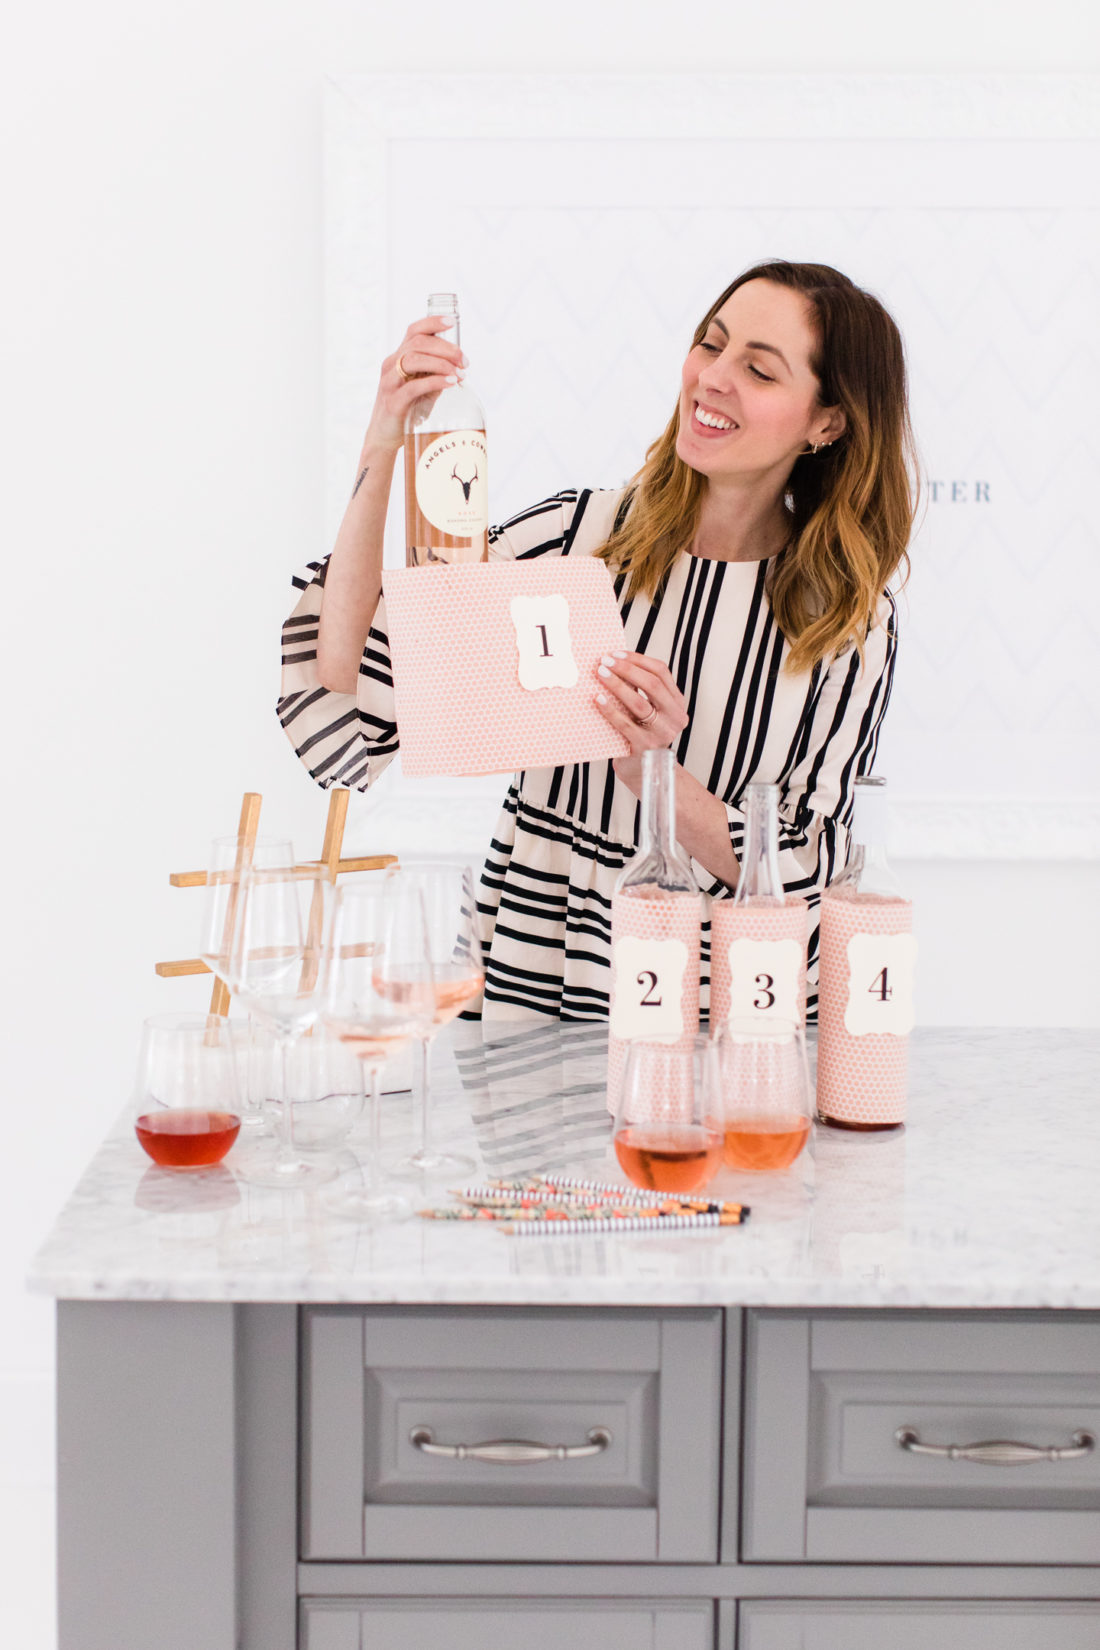 Eva Amurri Martino removes the wine bottle coverings to reveal the true wines behind the taste tests at her Rosé Tasting Party